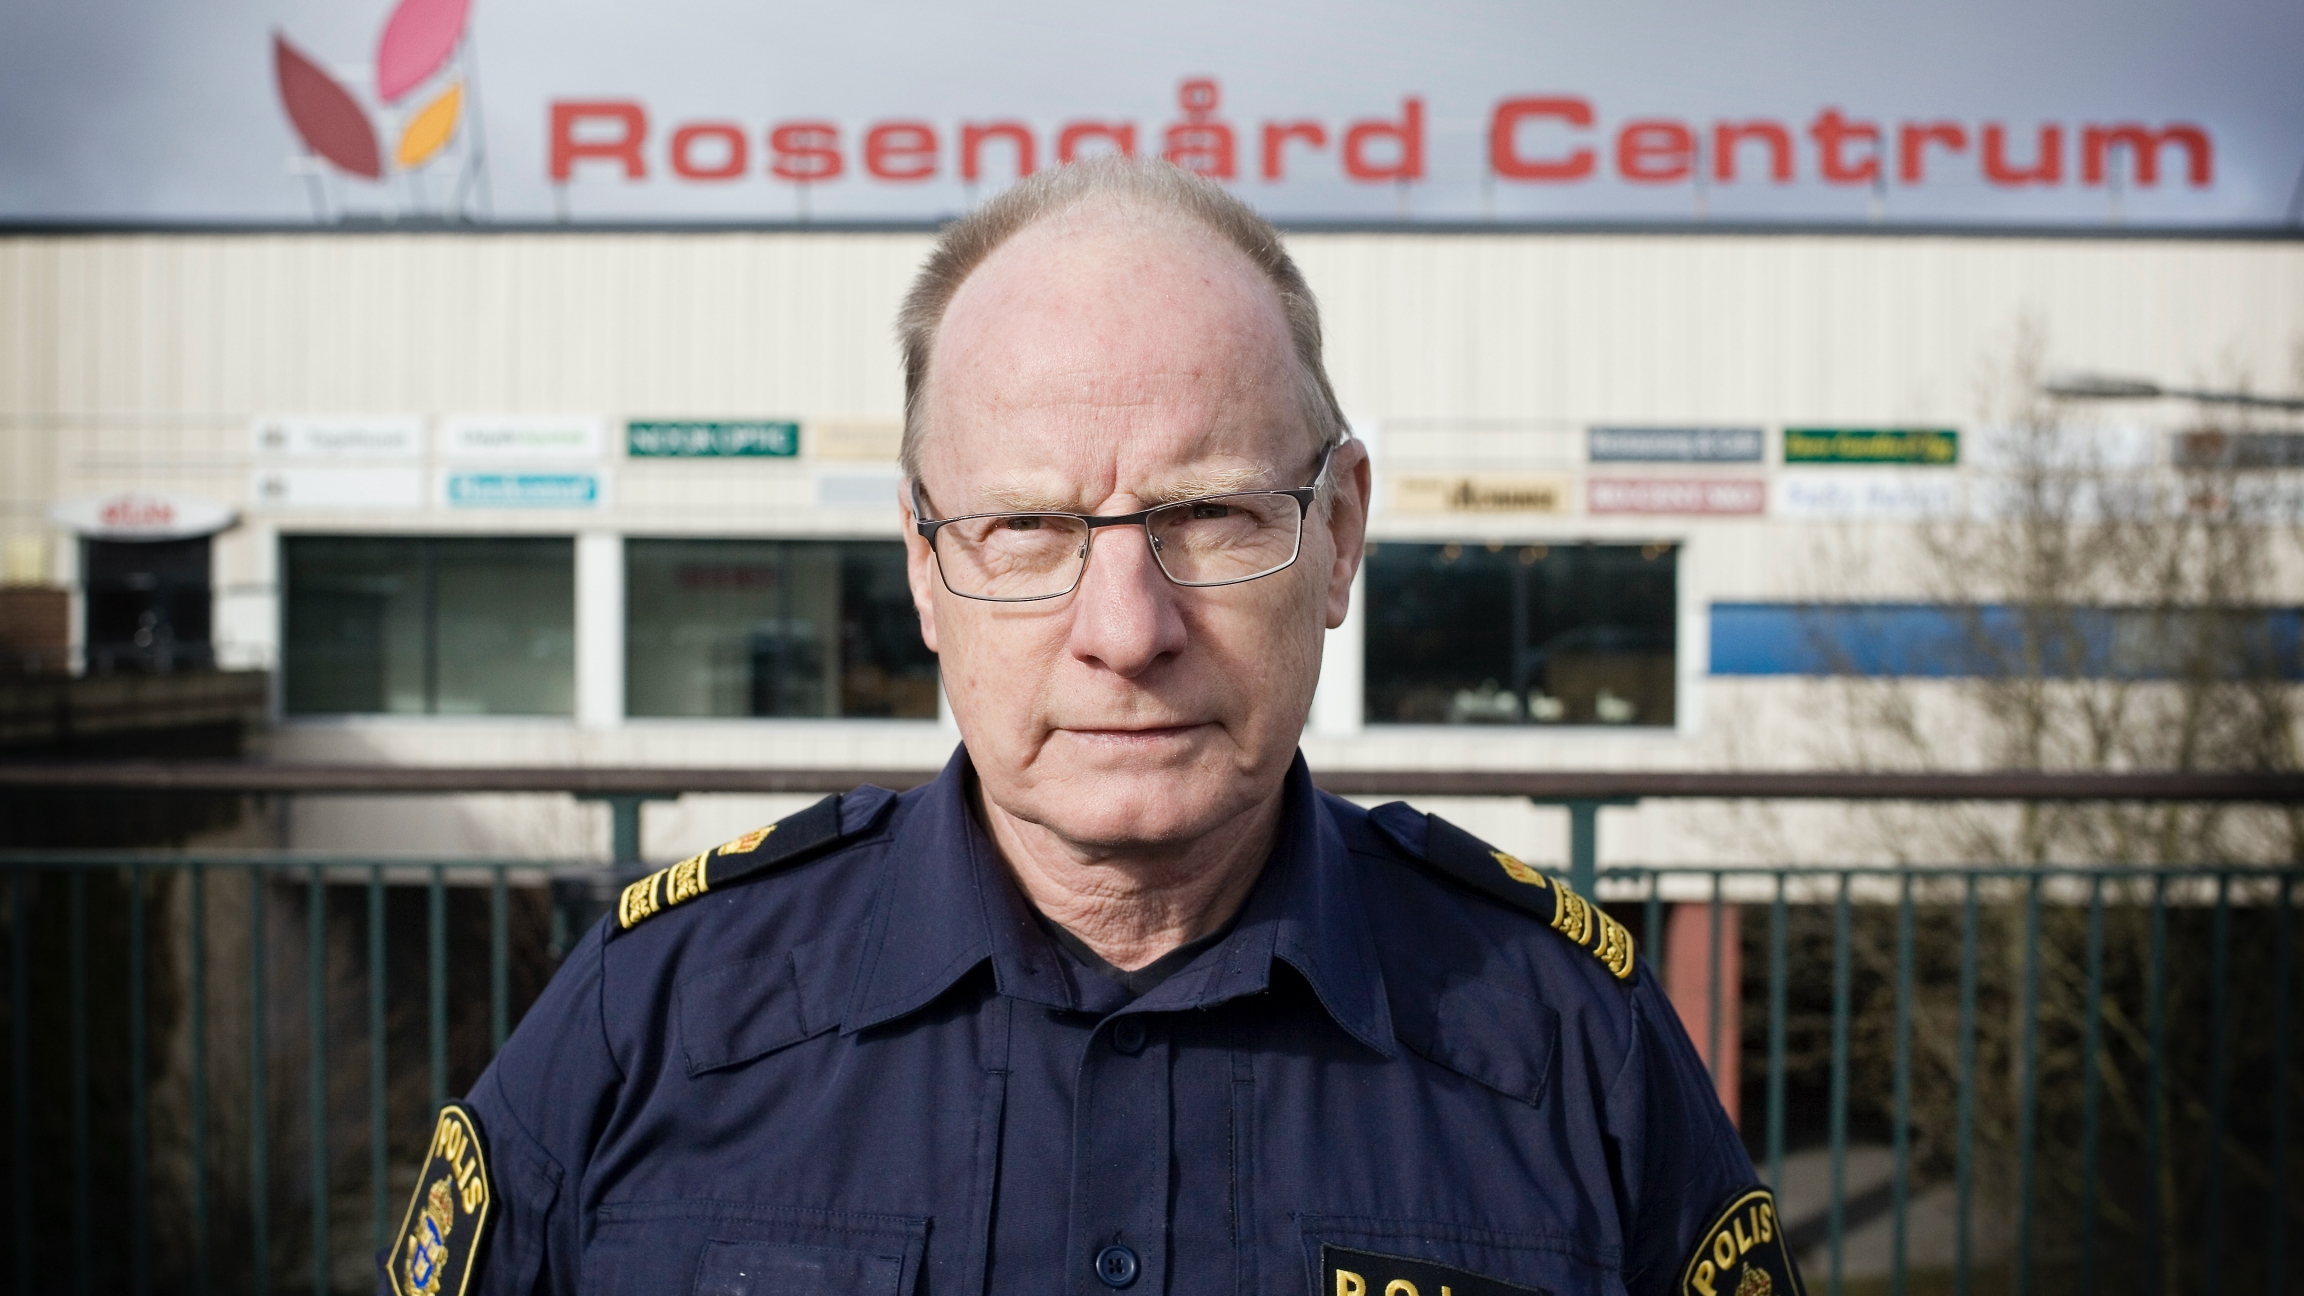 Glen Sjögren, a 40-year police officer inMalmö, Sweden,says he was surprised by a recent report showing the rate ofgun violence in the countryhas gone up. His city has been successful in recent years in tackling gangs and gun violence.